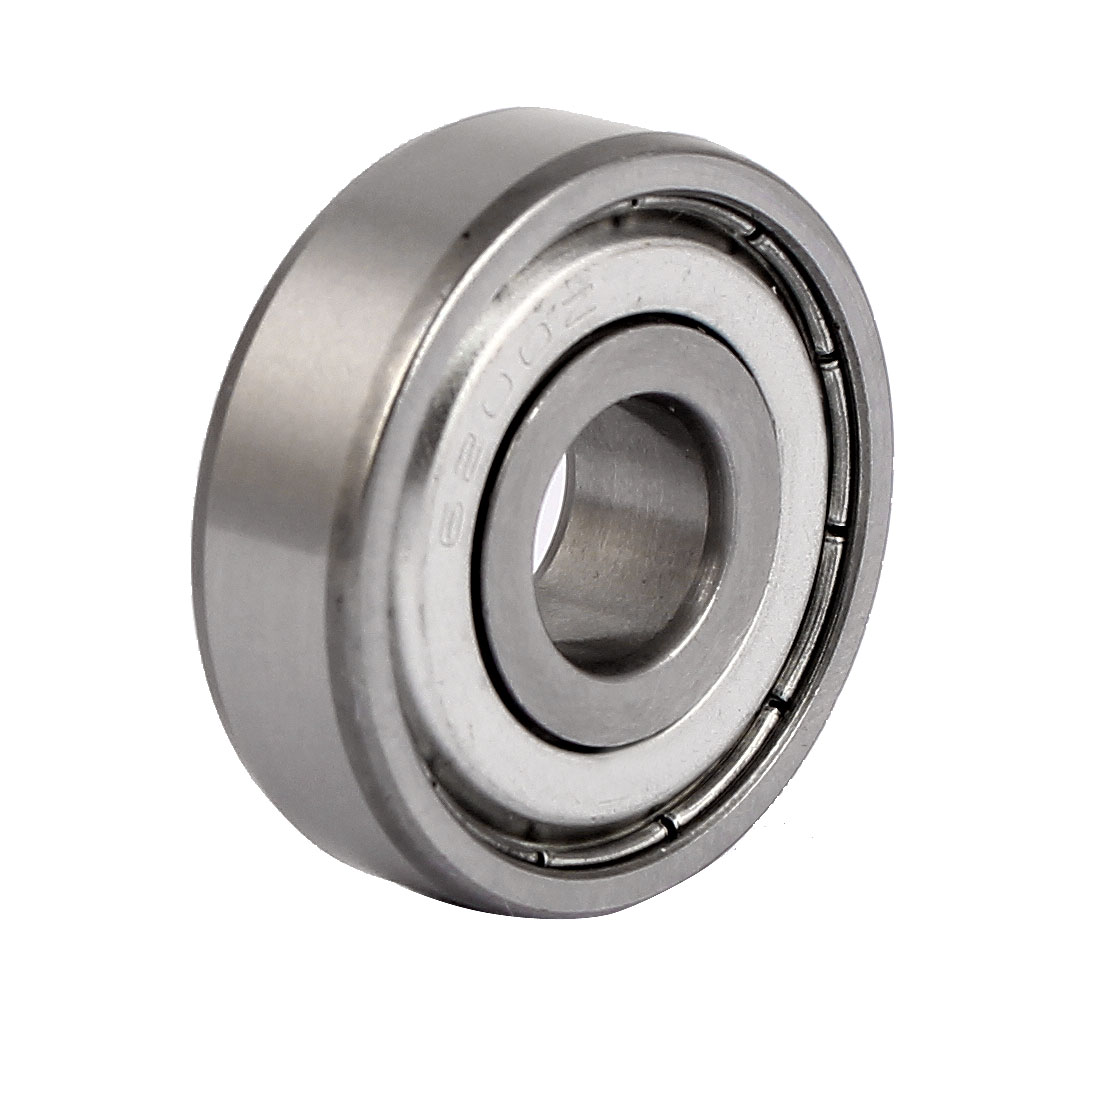 ZZ6200 30mm x 10mm x 9mm Single Row Double Shielded Deep Groove Ball Bearing